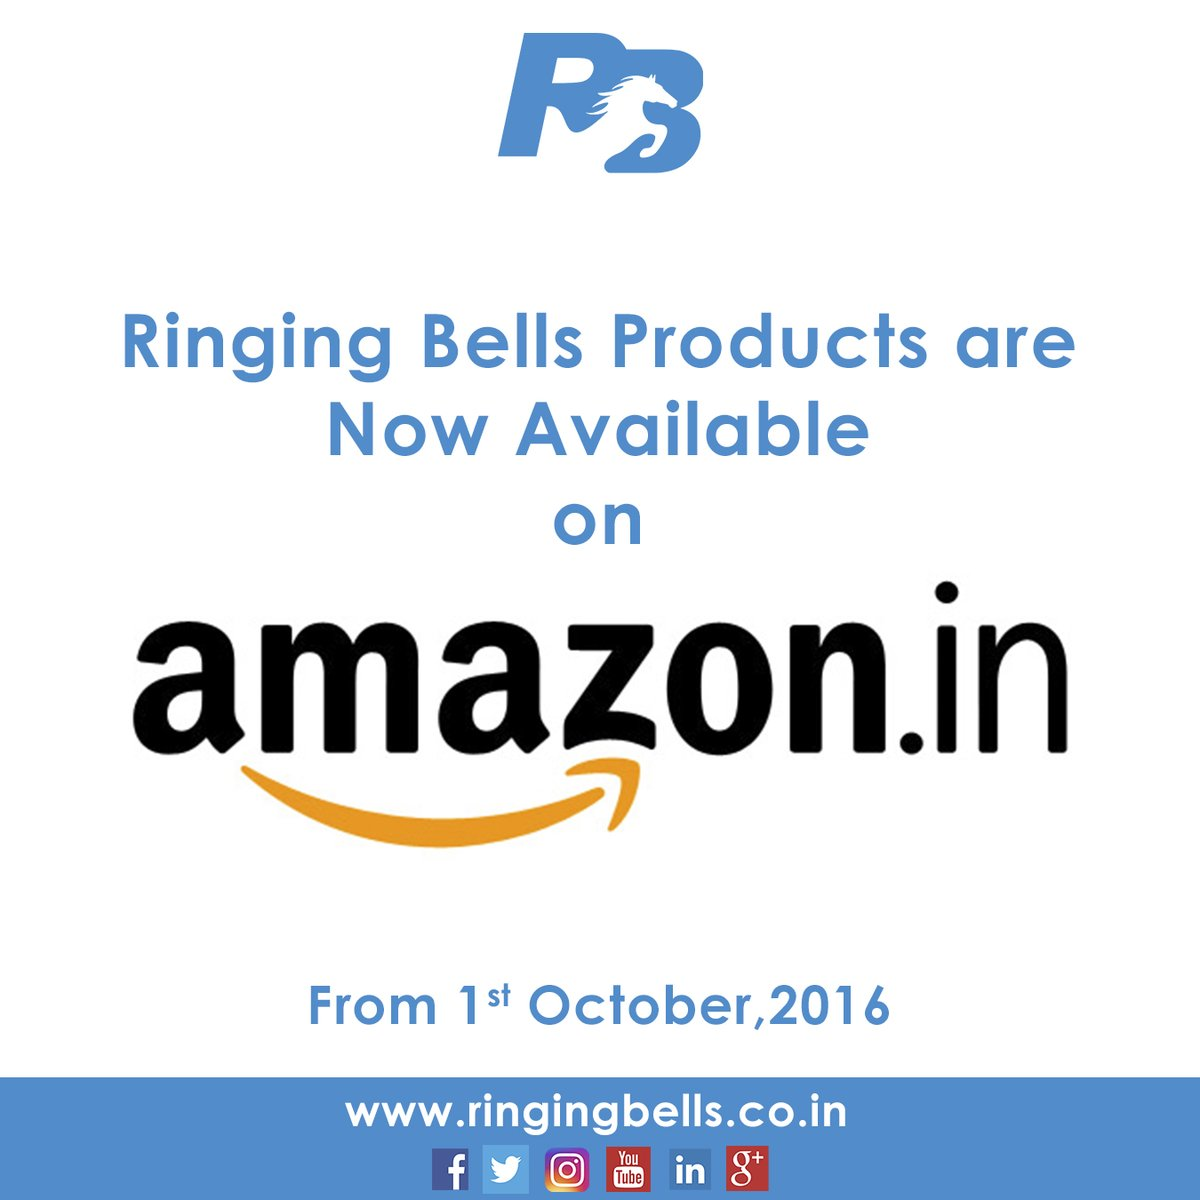 Ringing Bells Products on Amazon